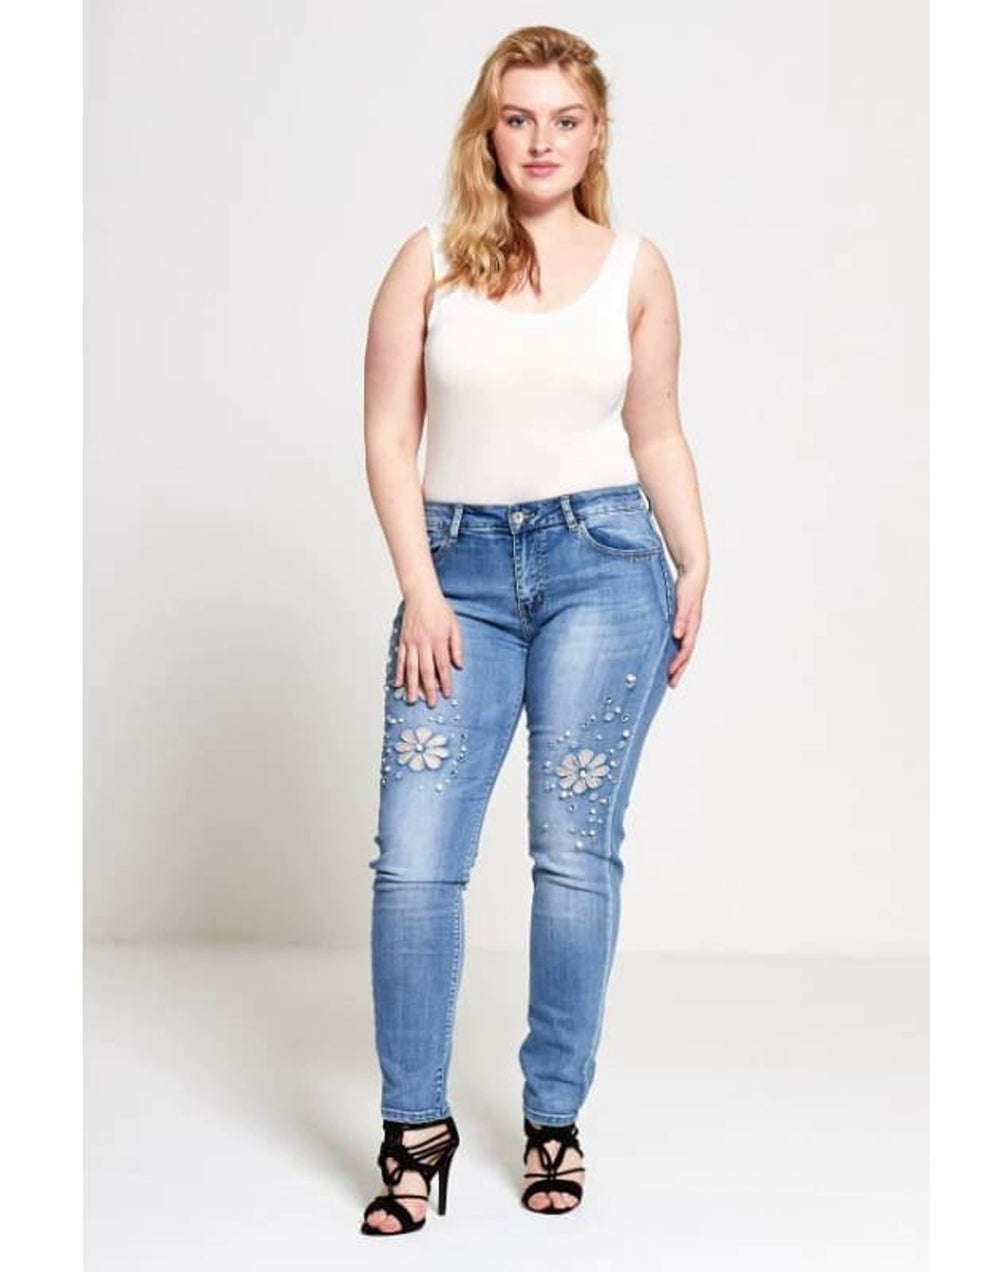 Plus Size Curve Faux Pearl Floral Jeans - 2XL / 44 / Blue - Plus Size Jeans & Jeggings denim embellished jeans trousers faux pearl floral